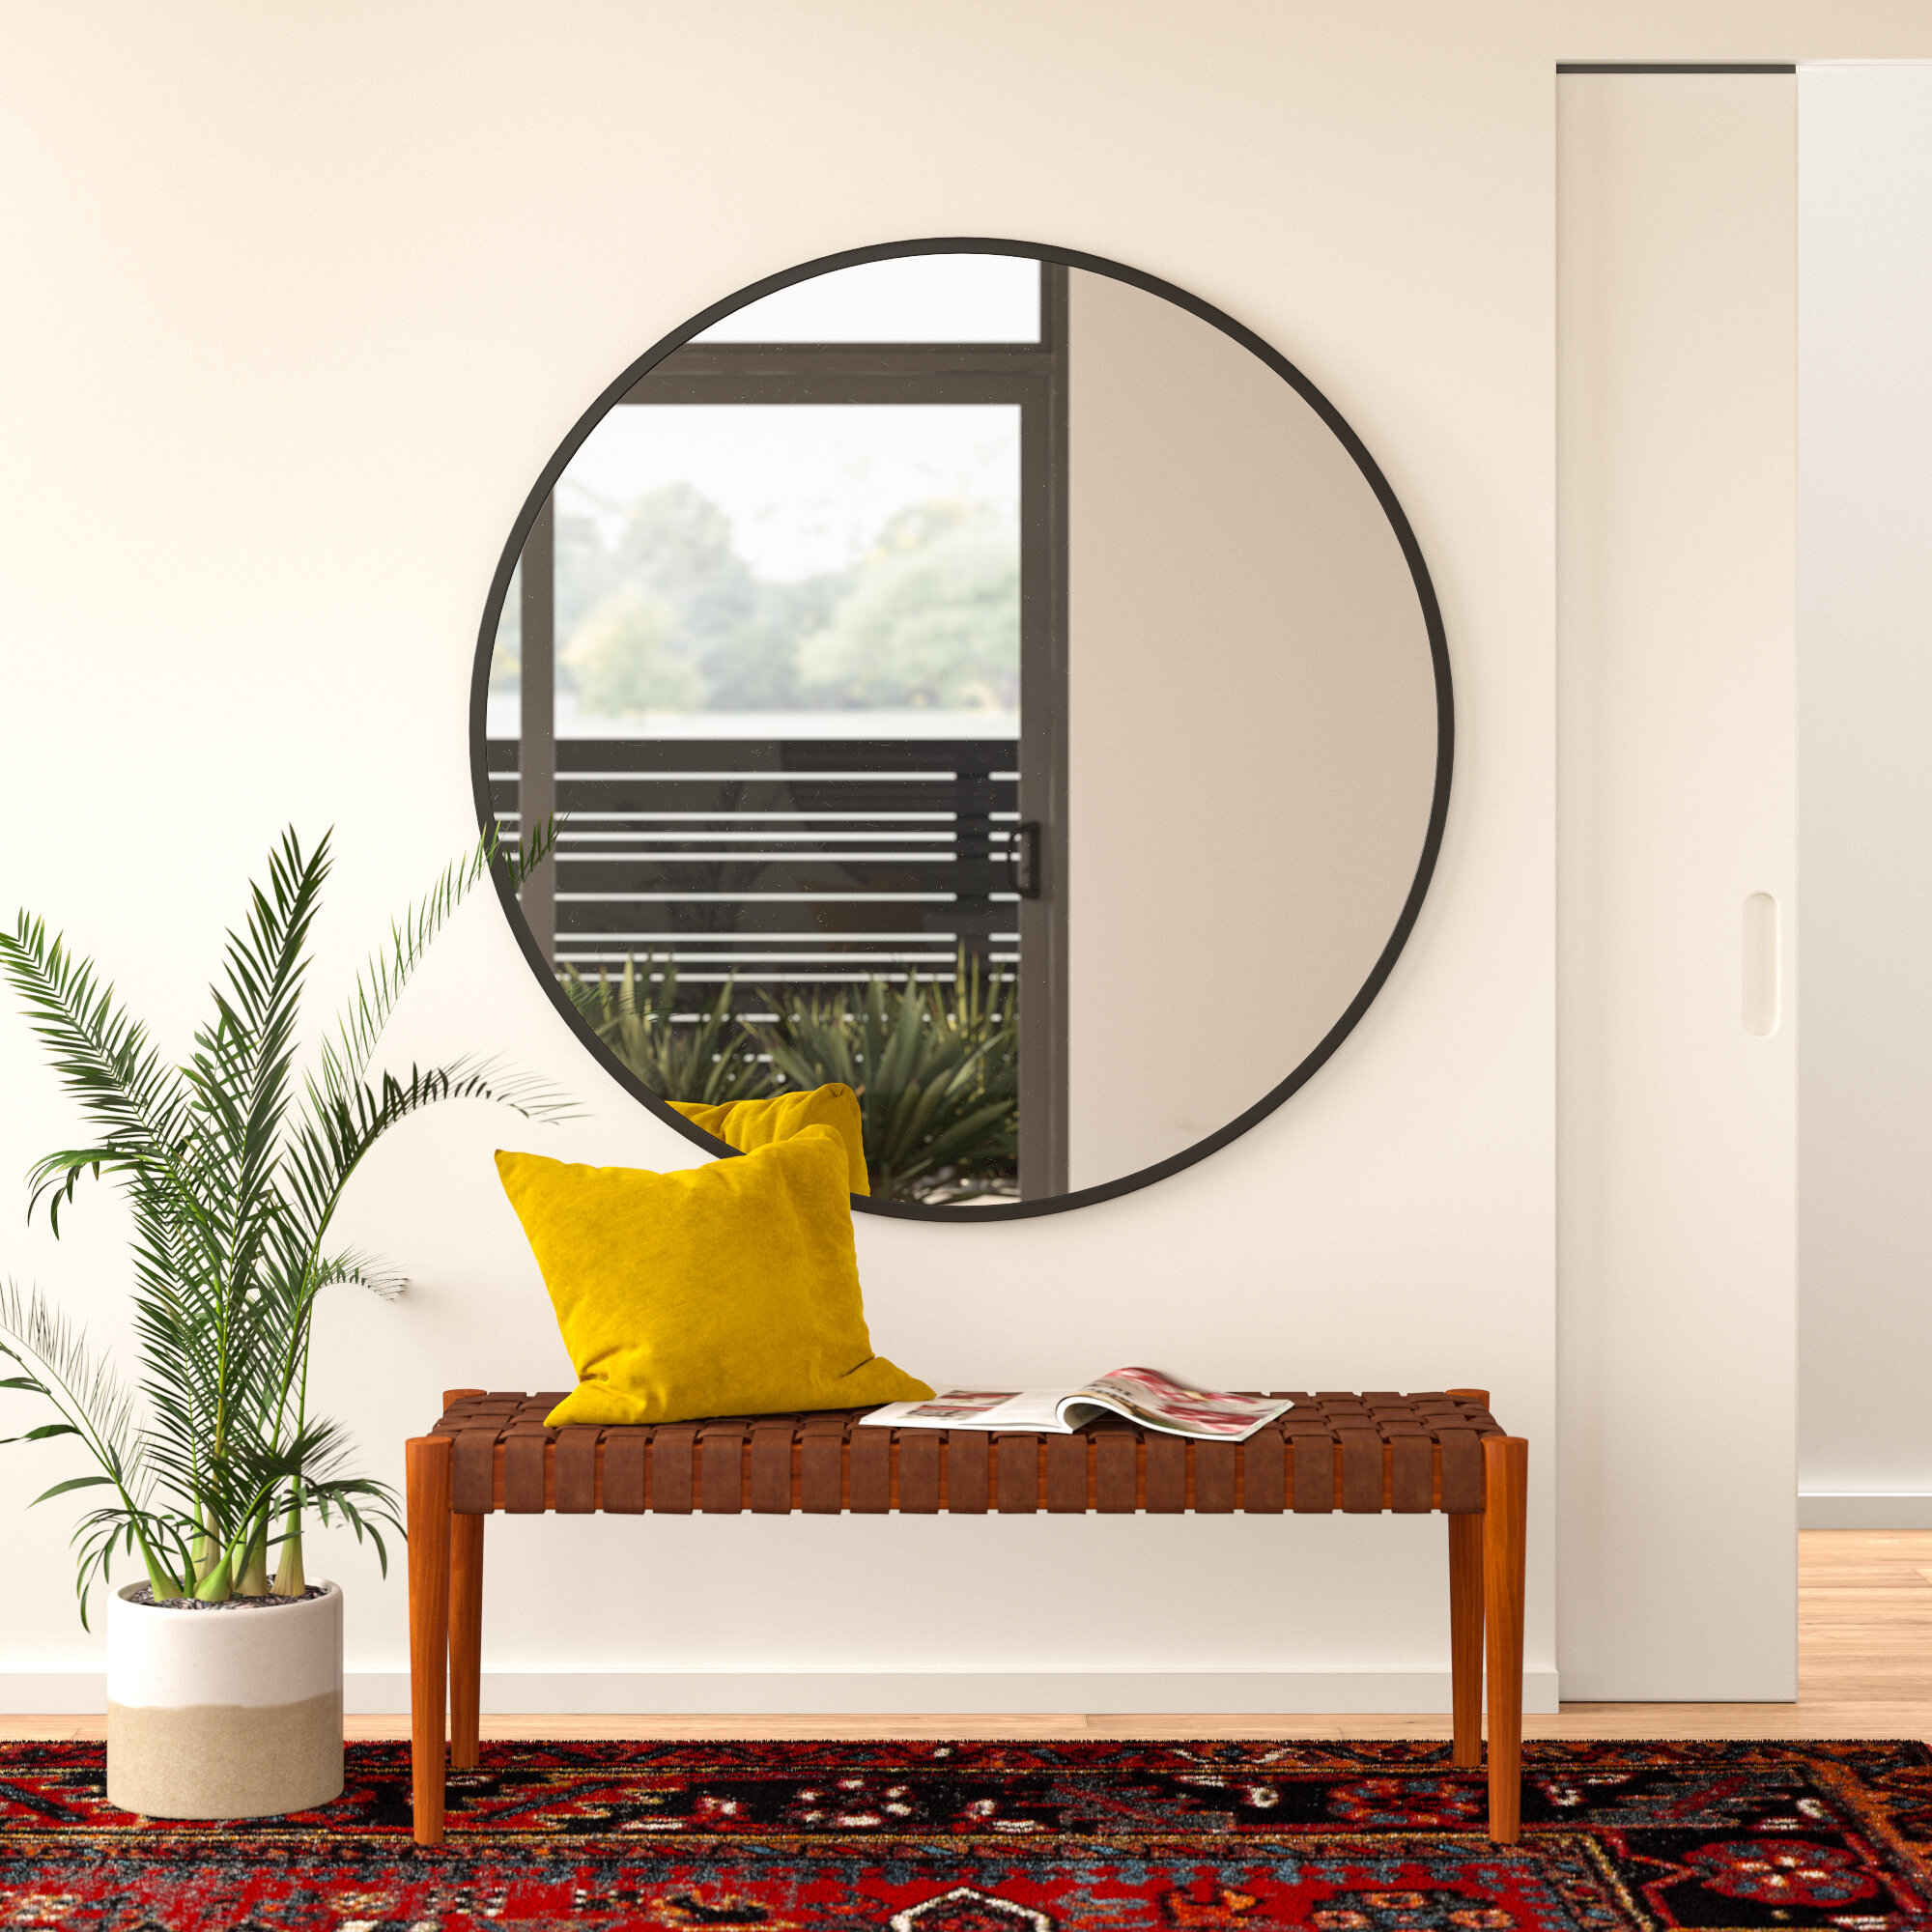 Greyleigh Needville Modern & Contemporary Accent Mirror Regarding Needville Modern & Contemporary Accent Mirrors (View 5 of 30)